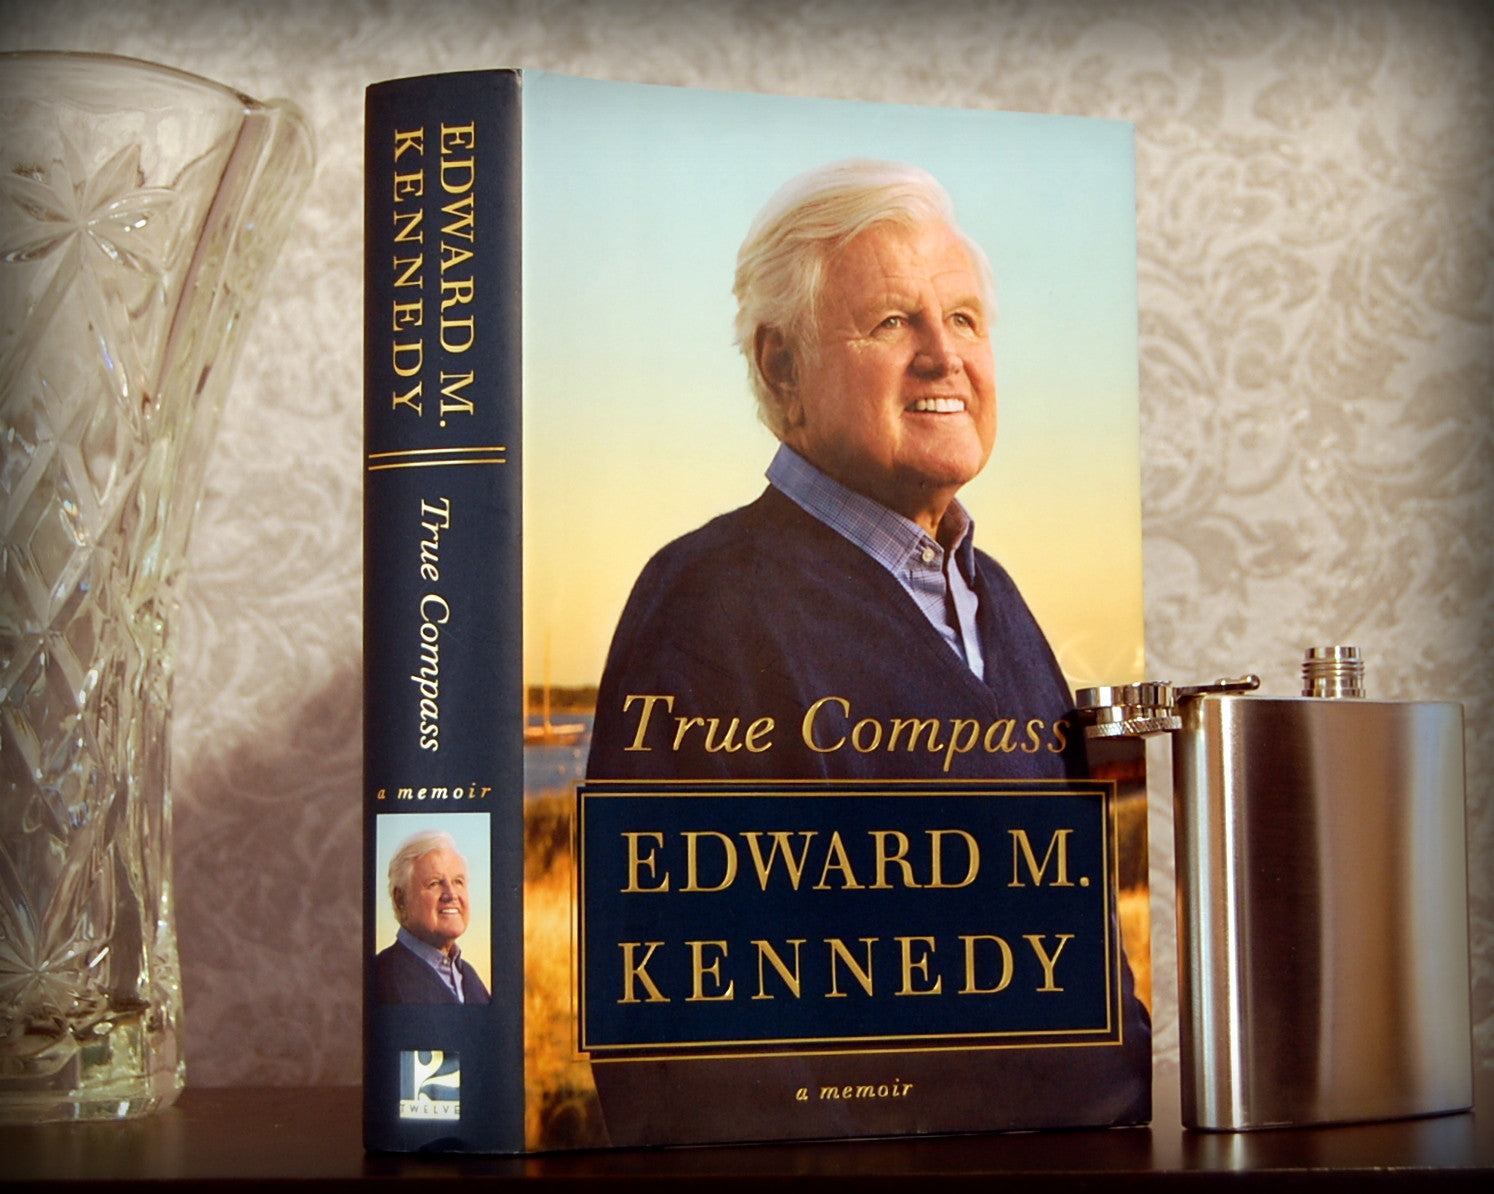 True Compass: A Memoir / Edward Kennedy - hollow book safe